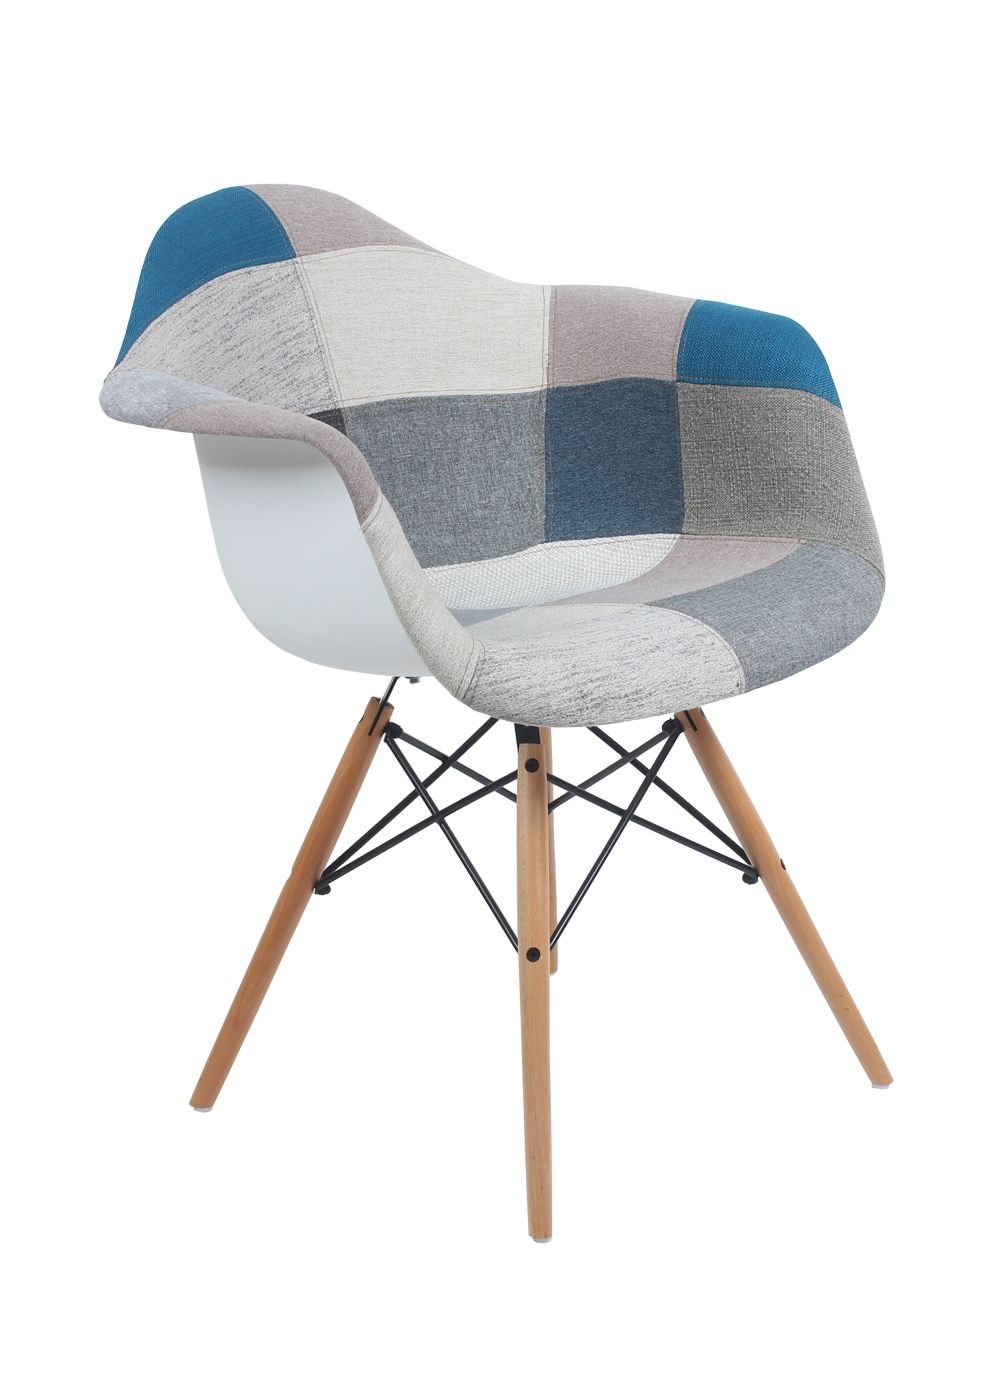 Chaise daw patchwork 2015 deco pinterest eames for Chaise eams patchwork